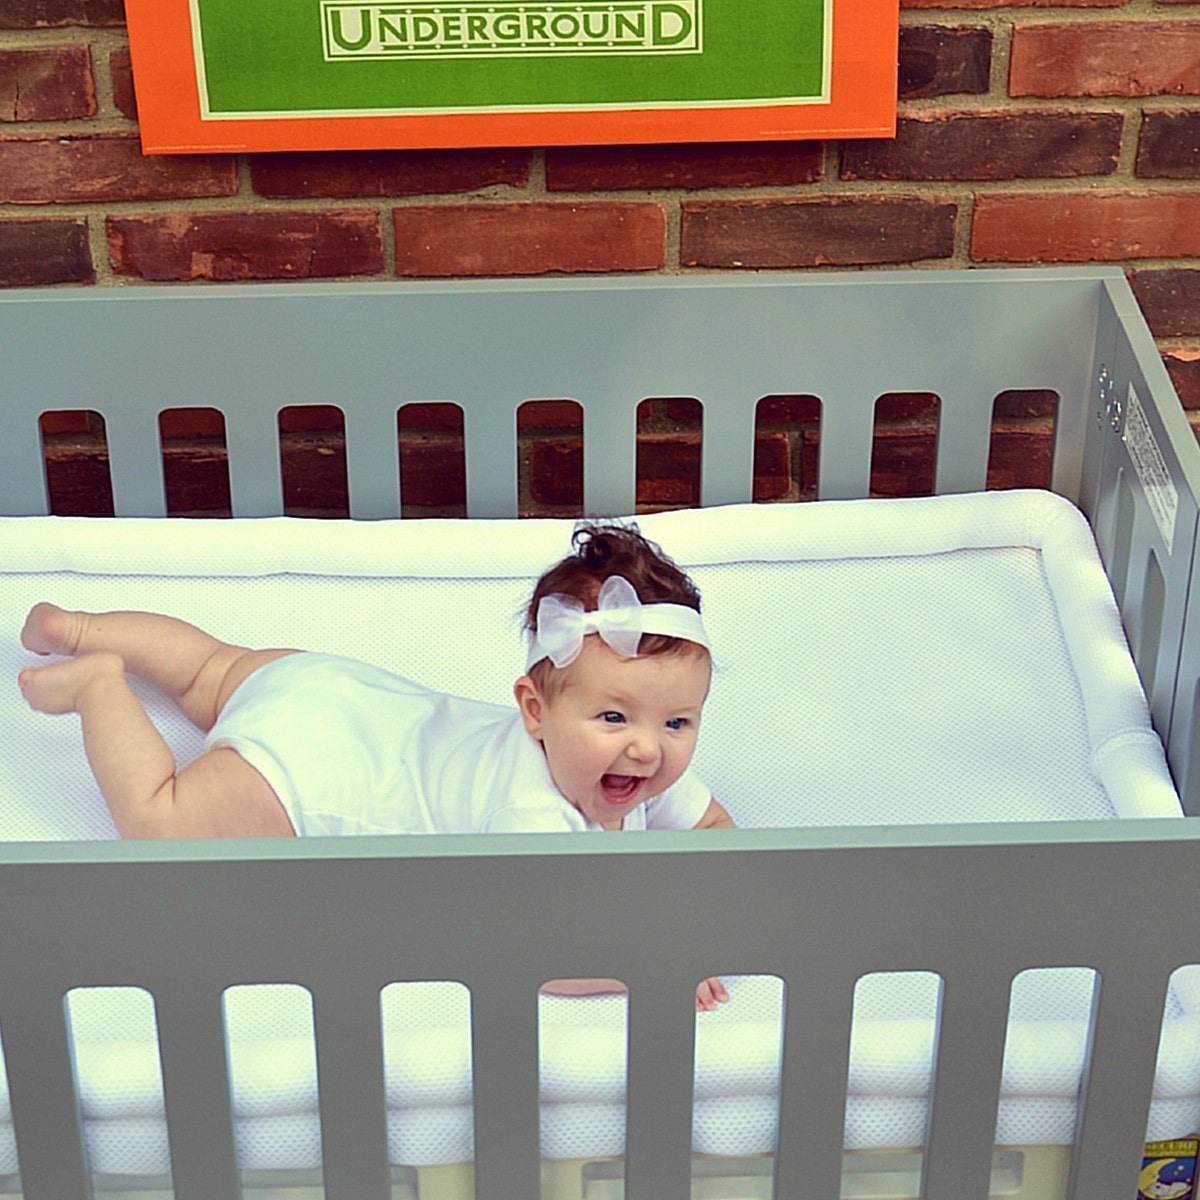 secure crib sent ideas a princes and safesleep mattress breathable princess heaven cribs mattresses beginnings